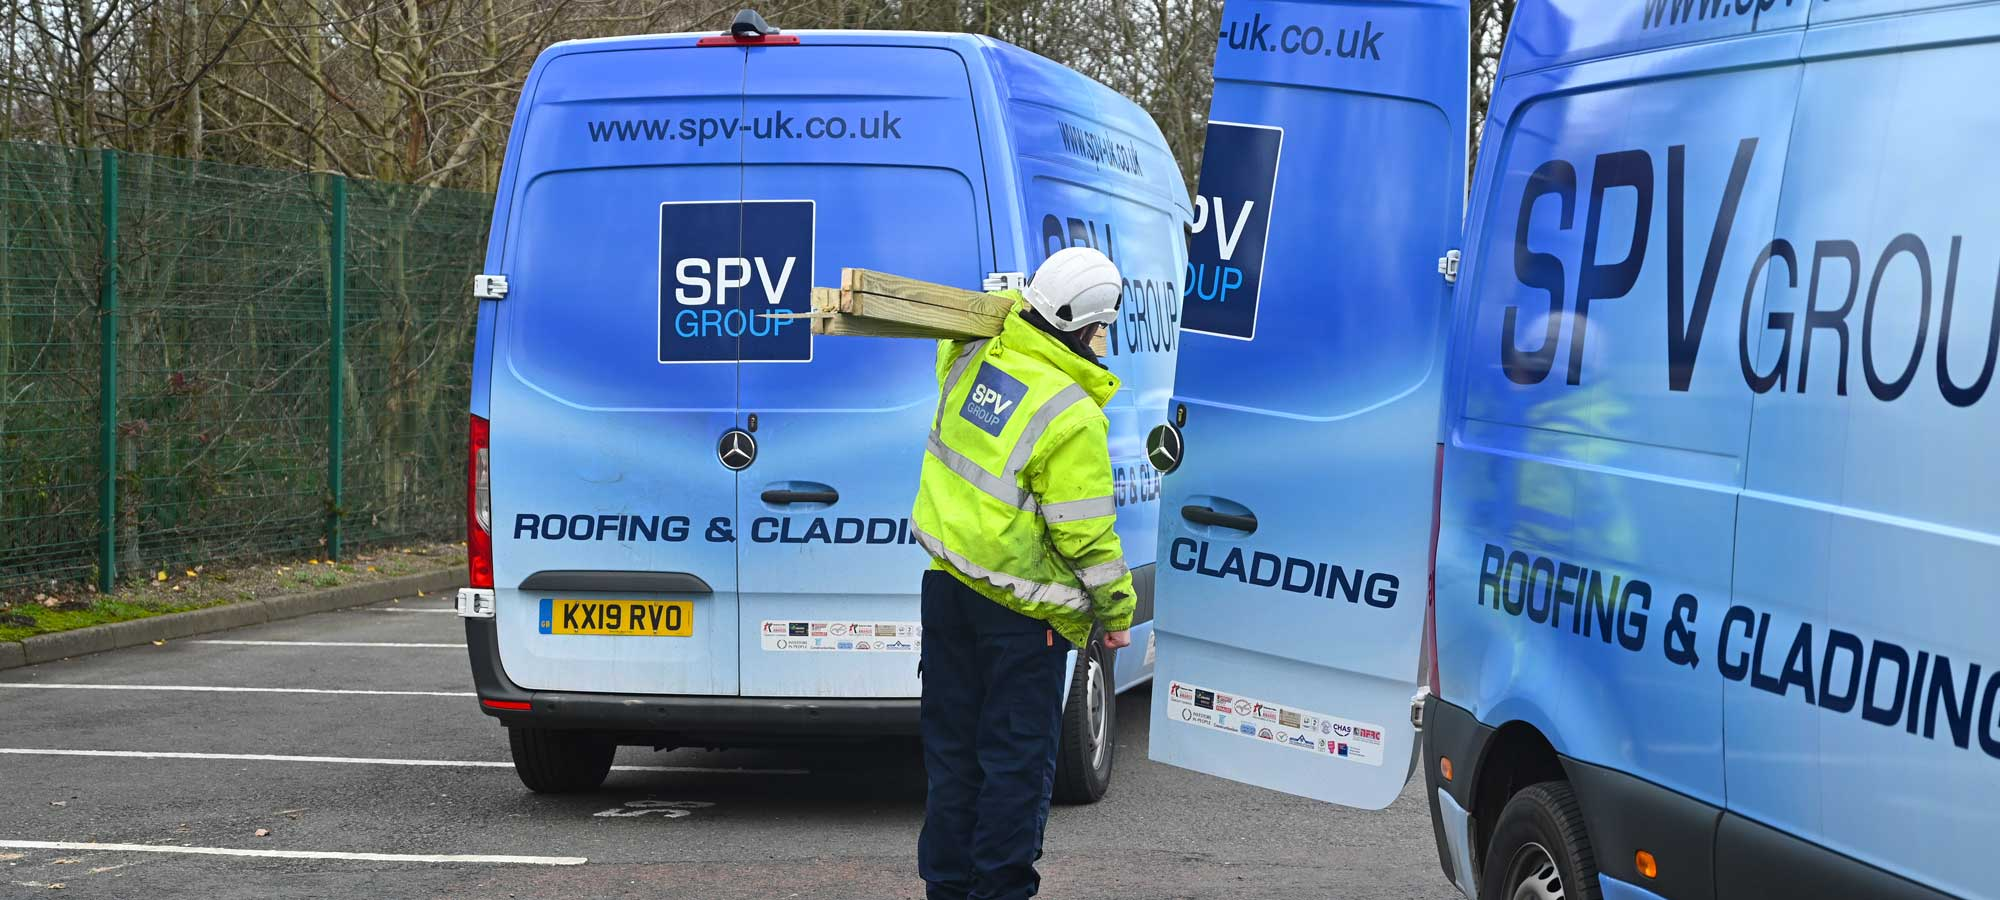 SPV Vans working on a site